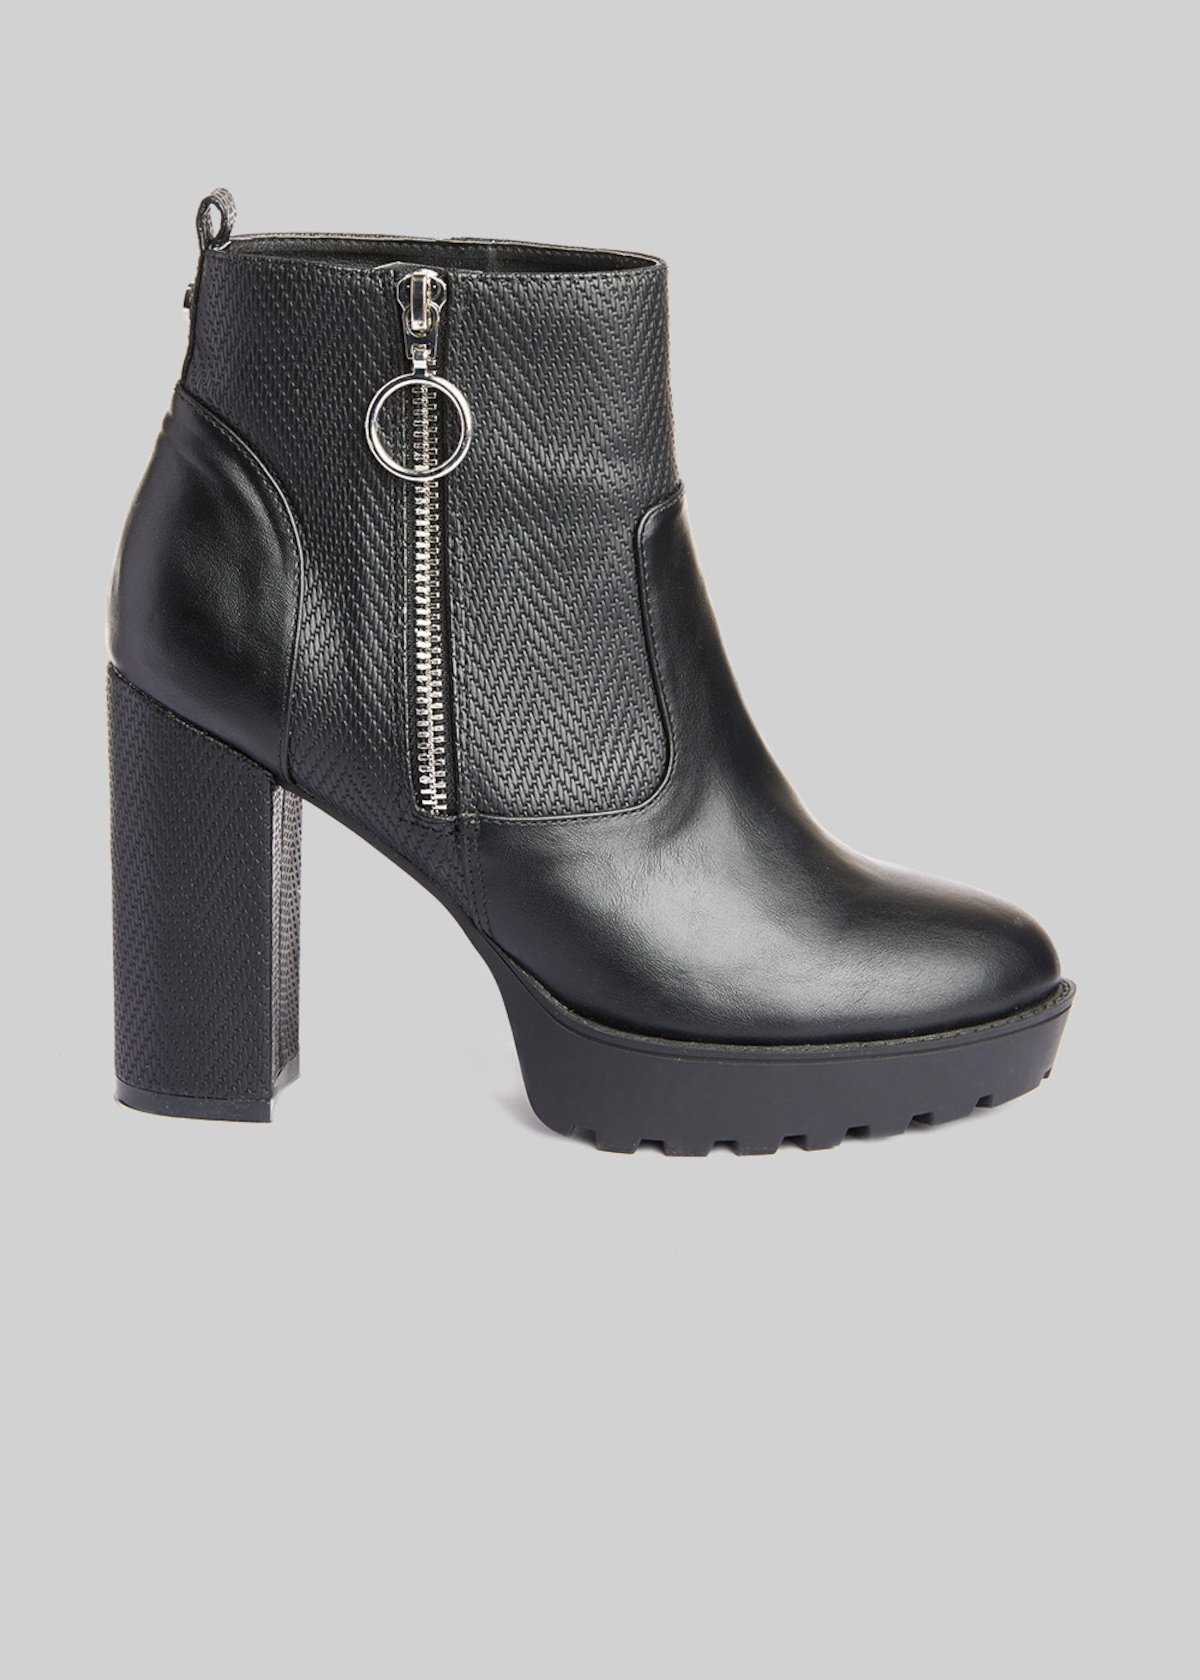 Faux-leather Shasa boot with heel and plateau - Black